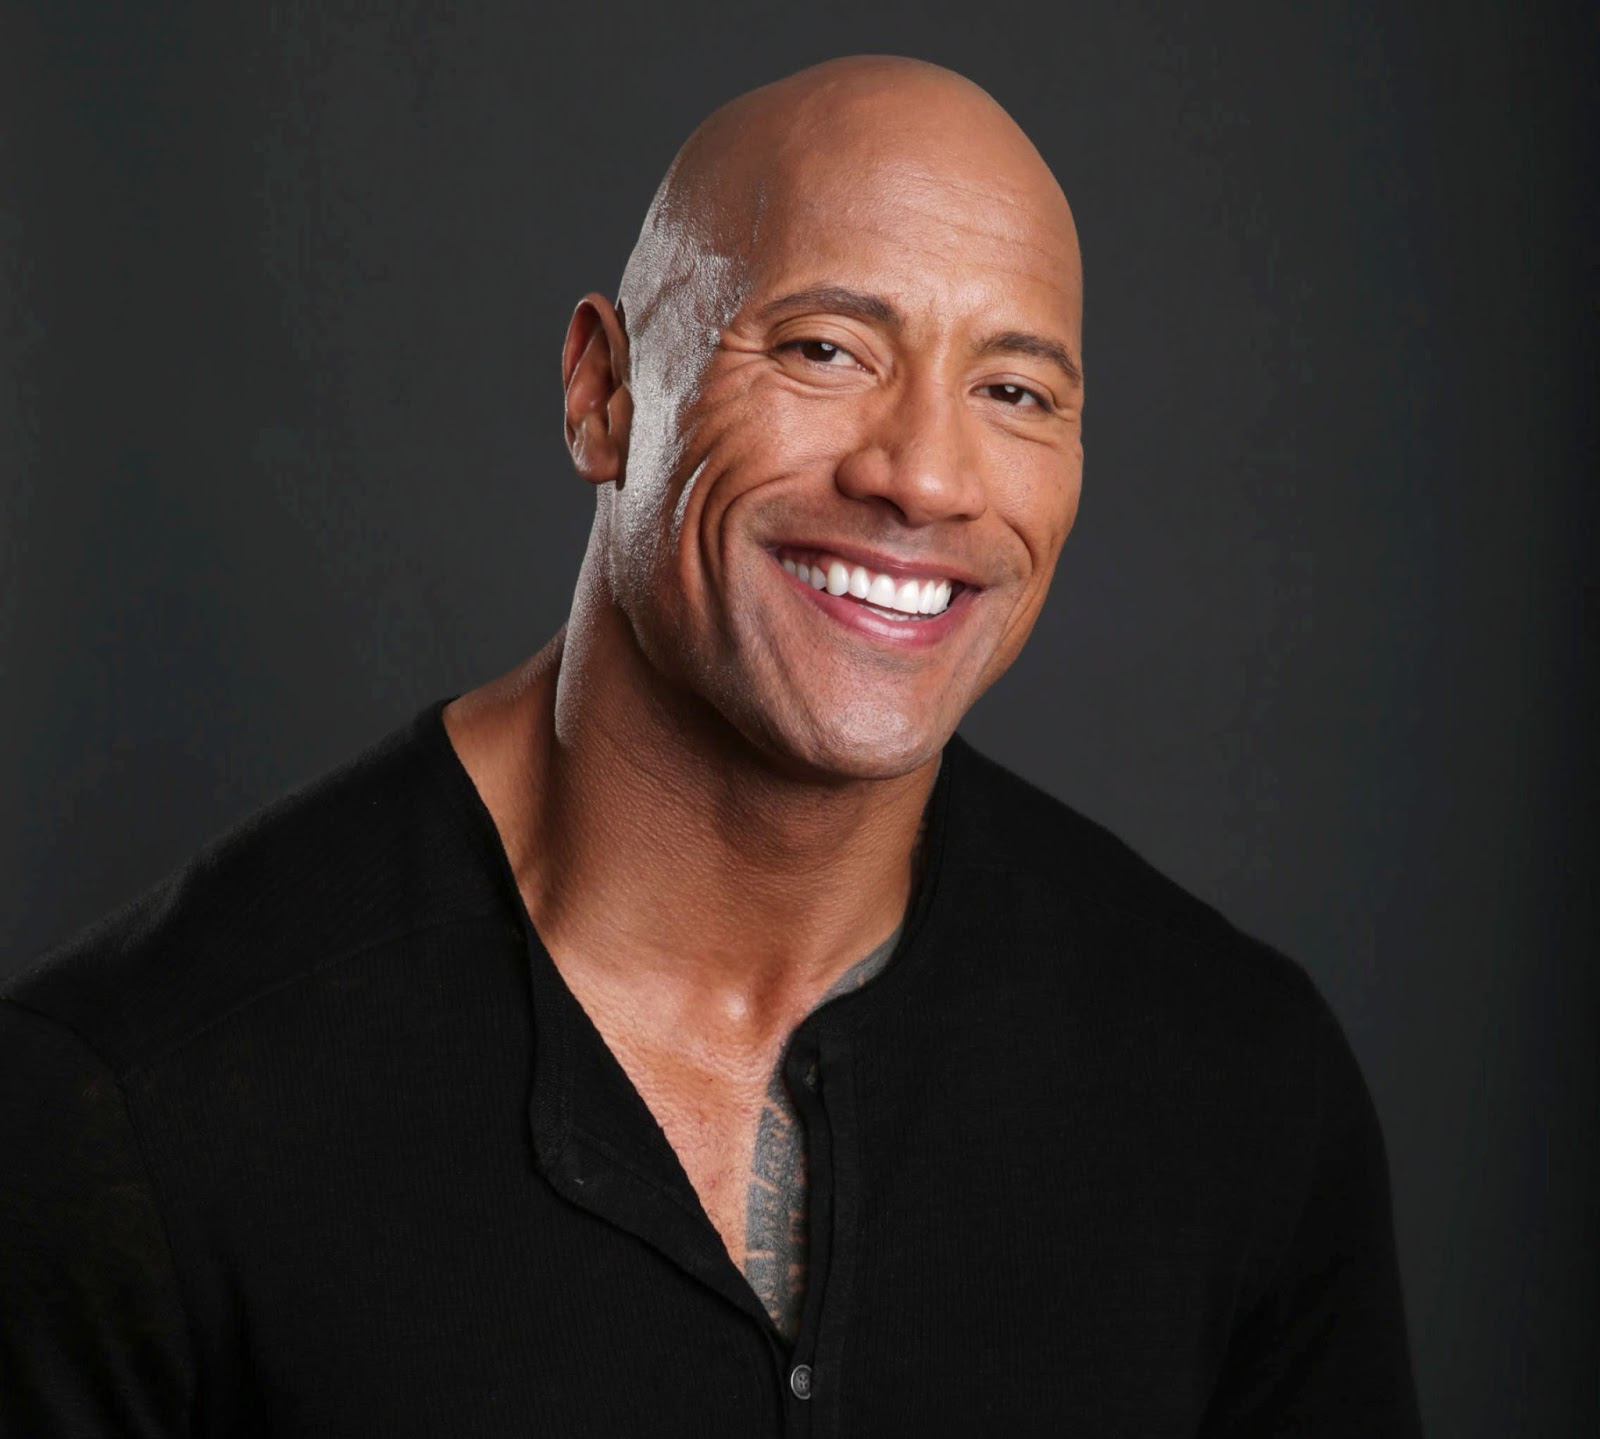 Dwayne Johnson WWE Champion And Hollywood Actro Hd